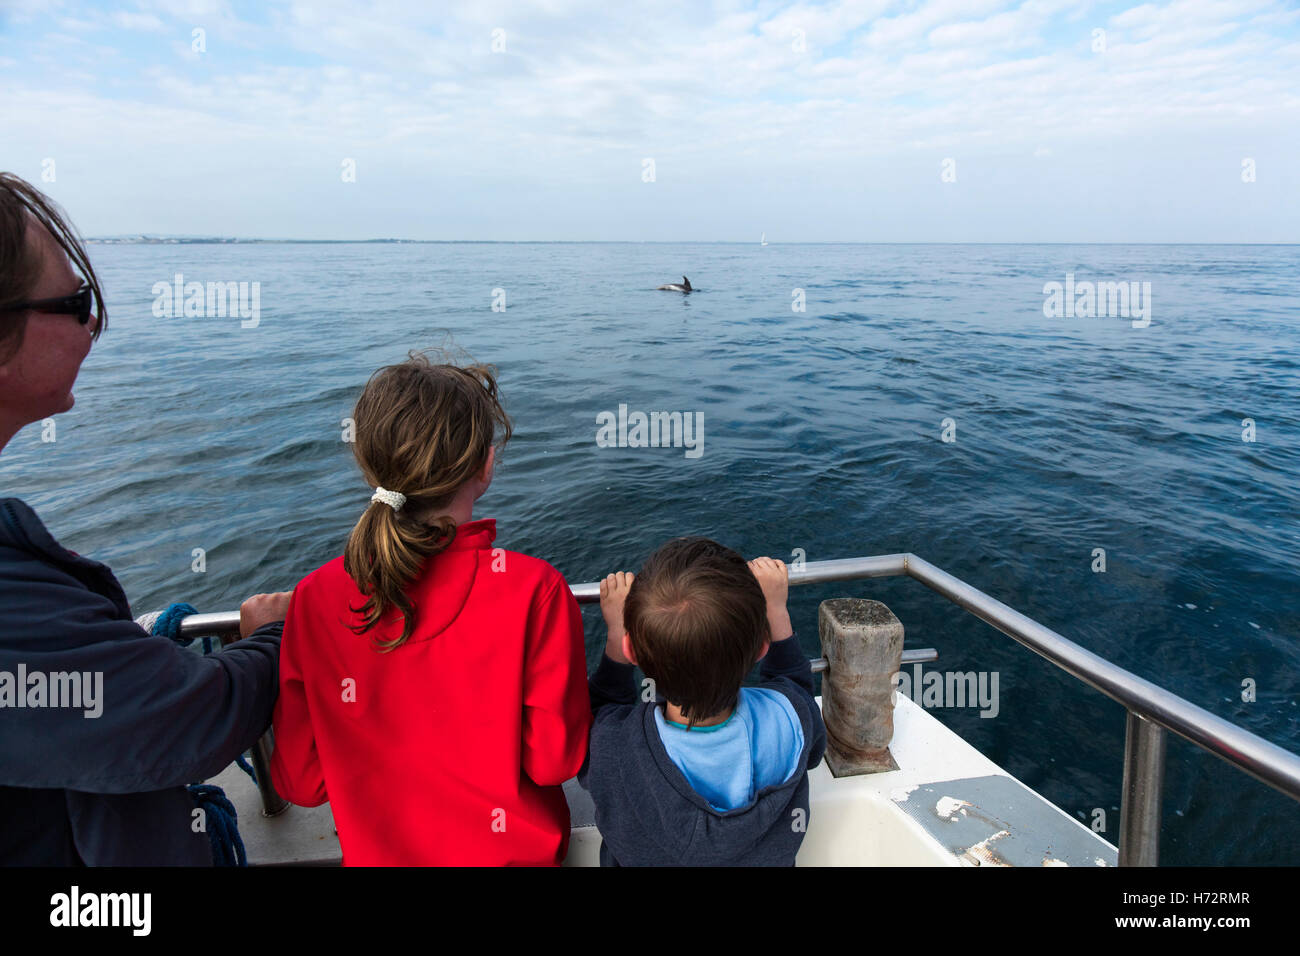 Dolphin watching near the Saltee Islands, County Wexford, Ireland. Stock Photo